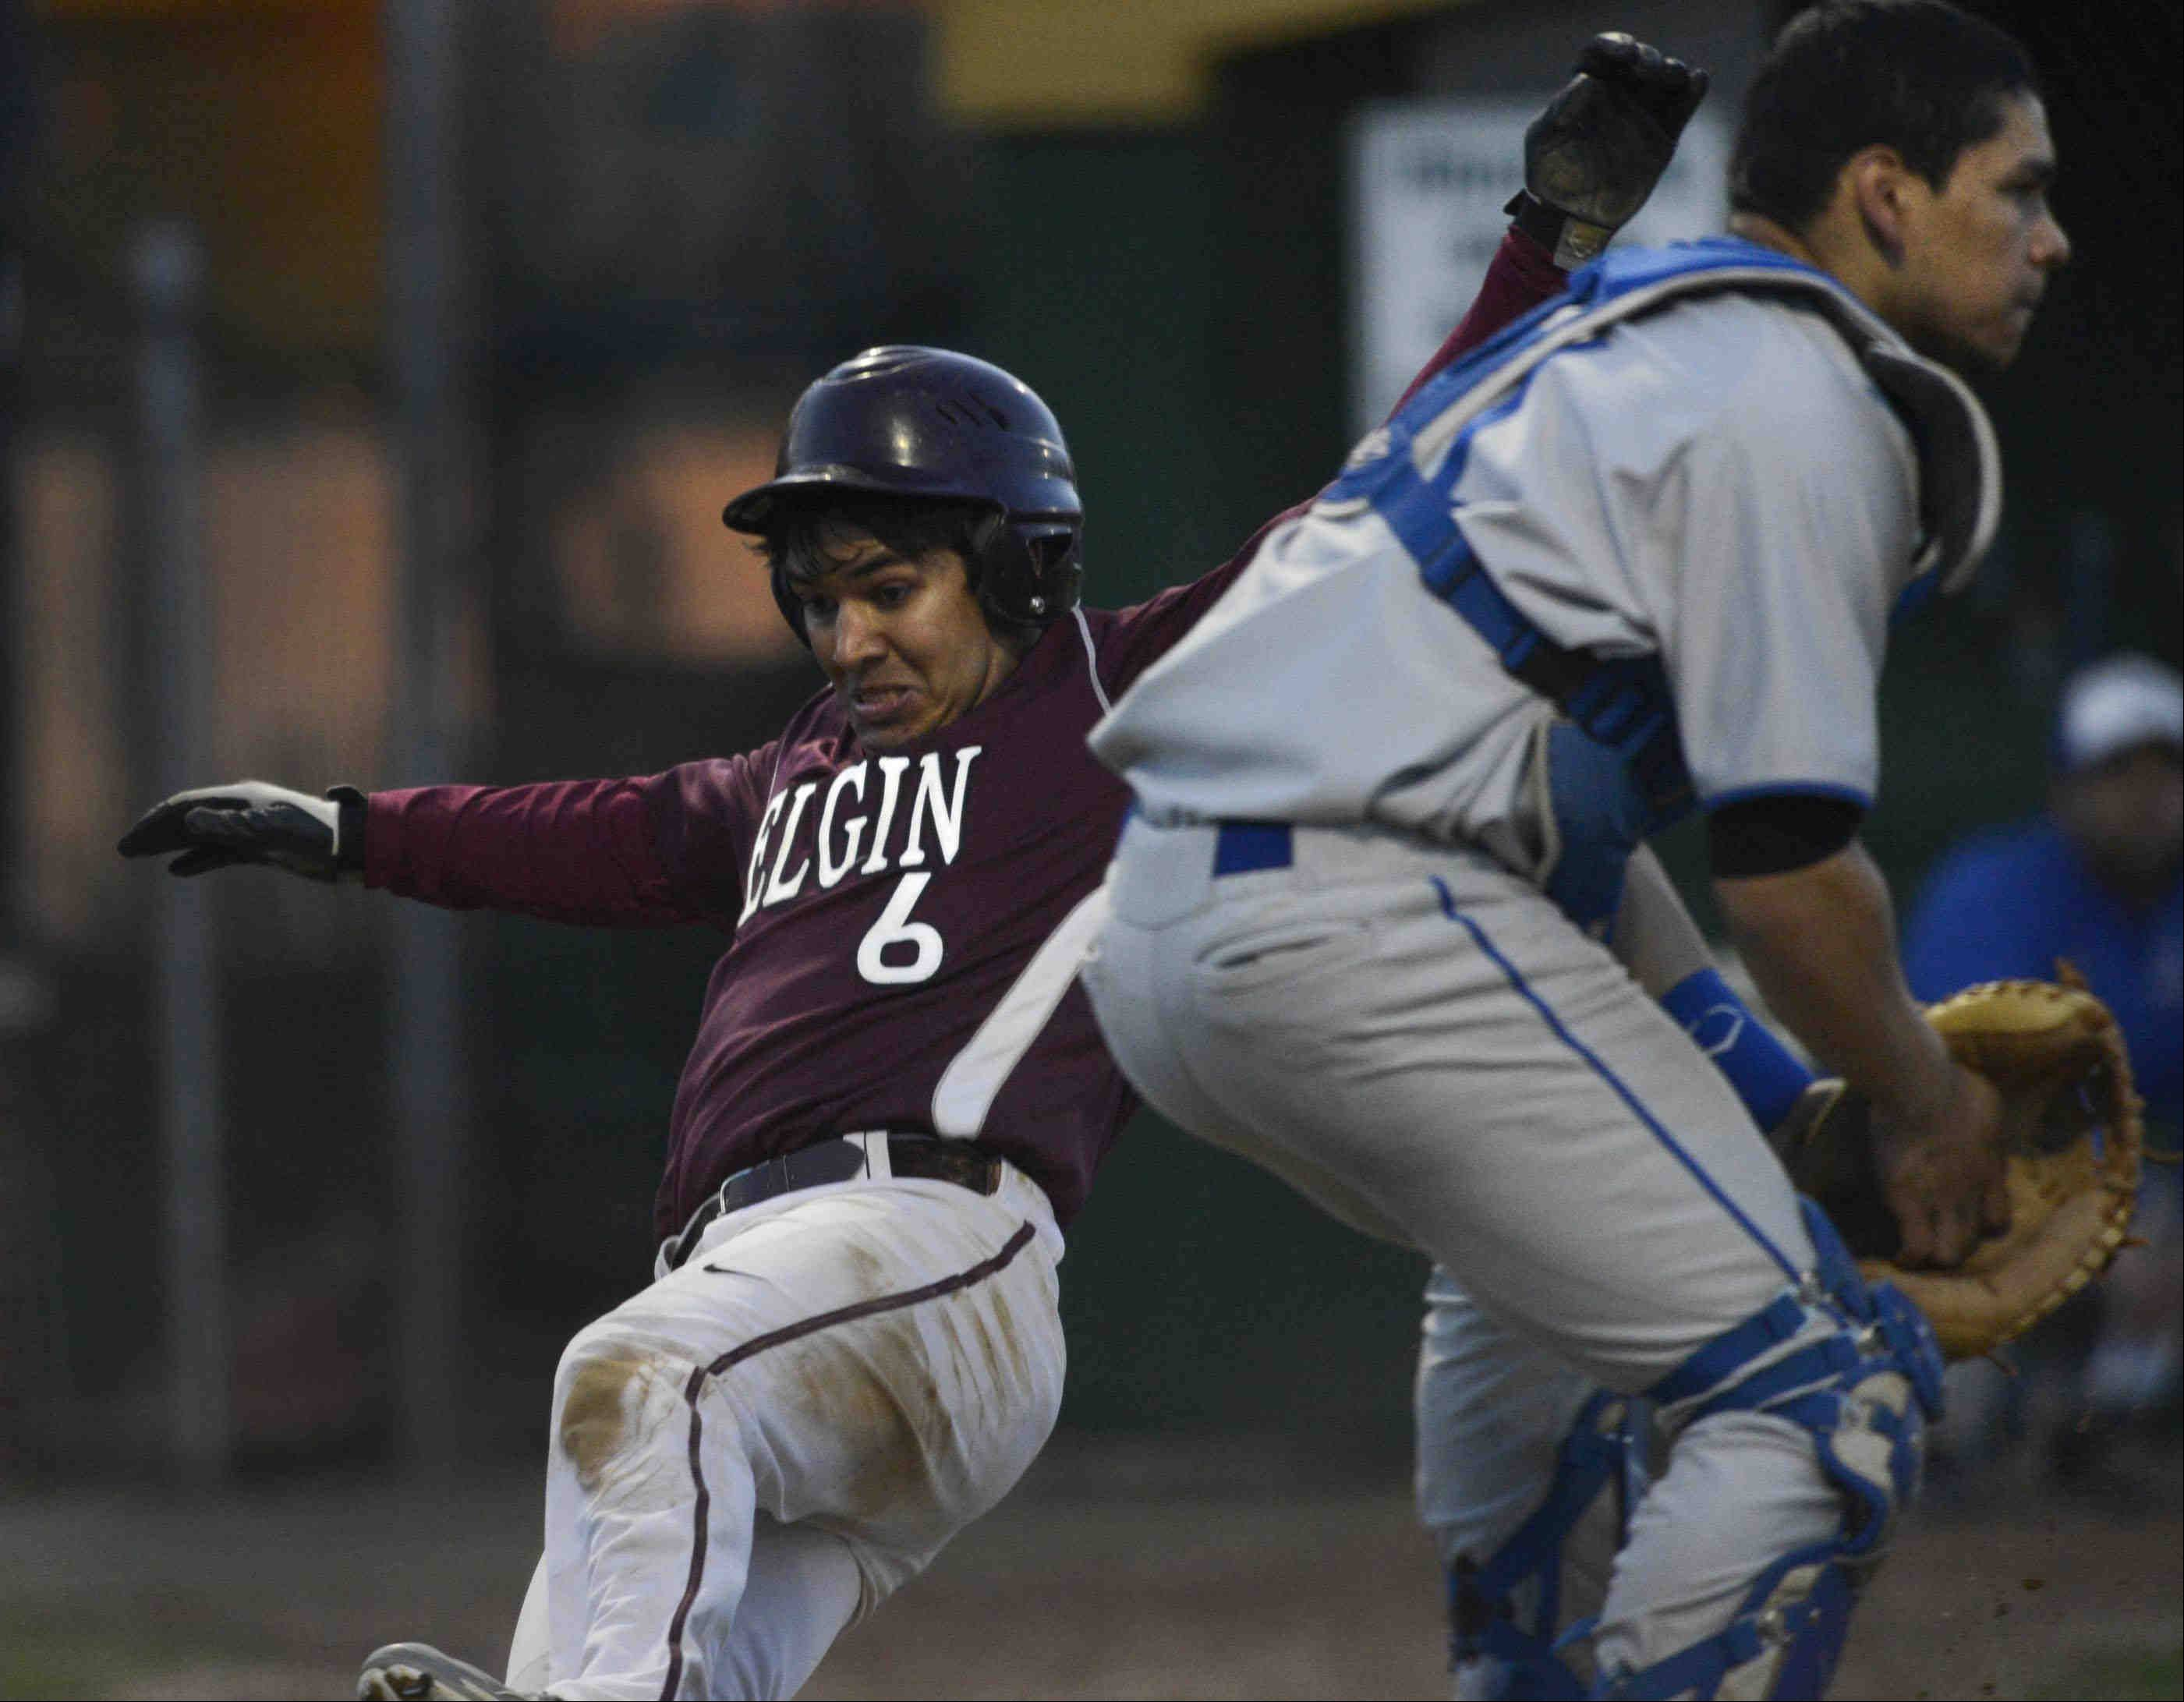 Elgin's Isaac Narayan scores during a rally in the sixth inning as Larkin catcher Niko Morado waits for the throw Thursday at Trout Park in Elgin.